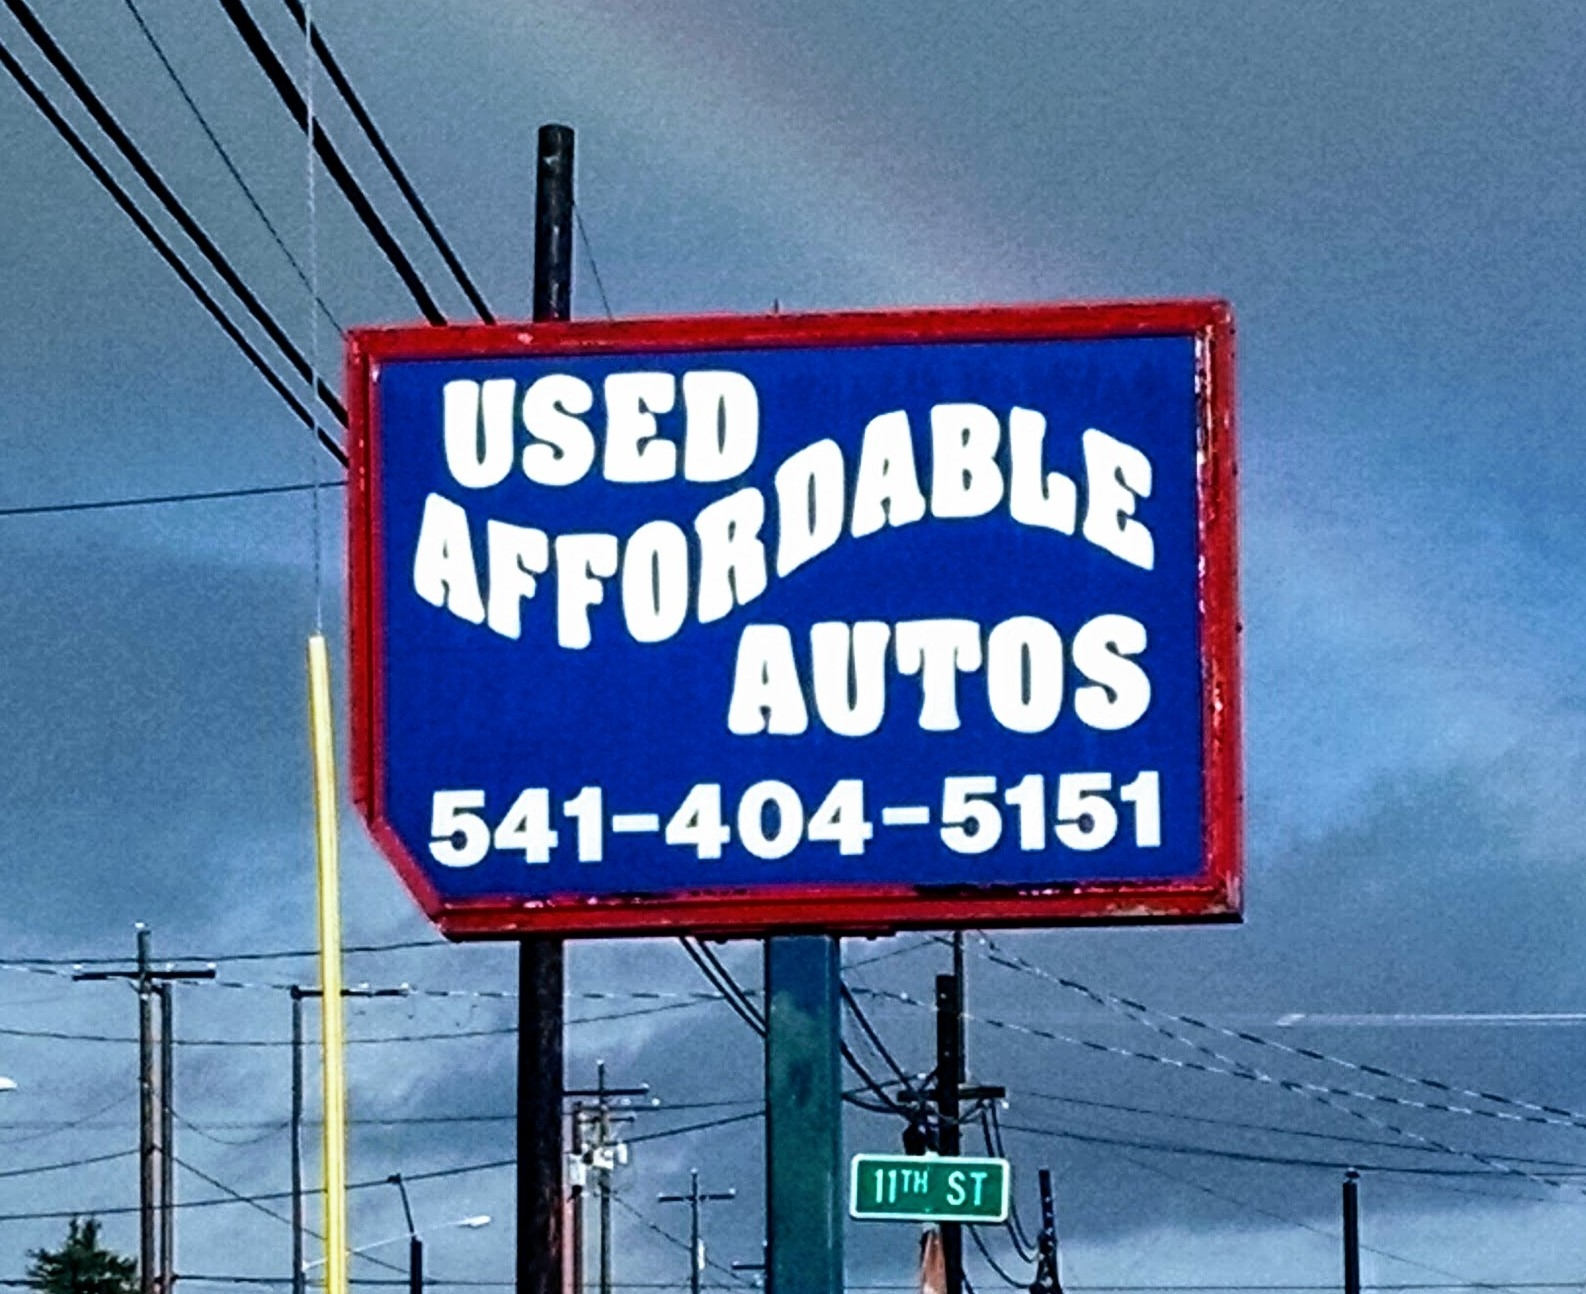 Used Affordable Autos